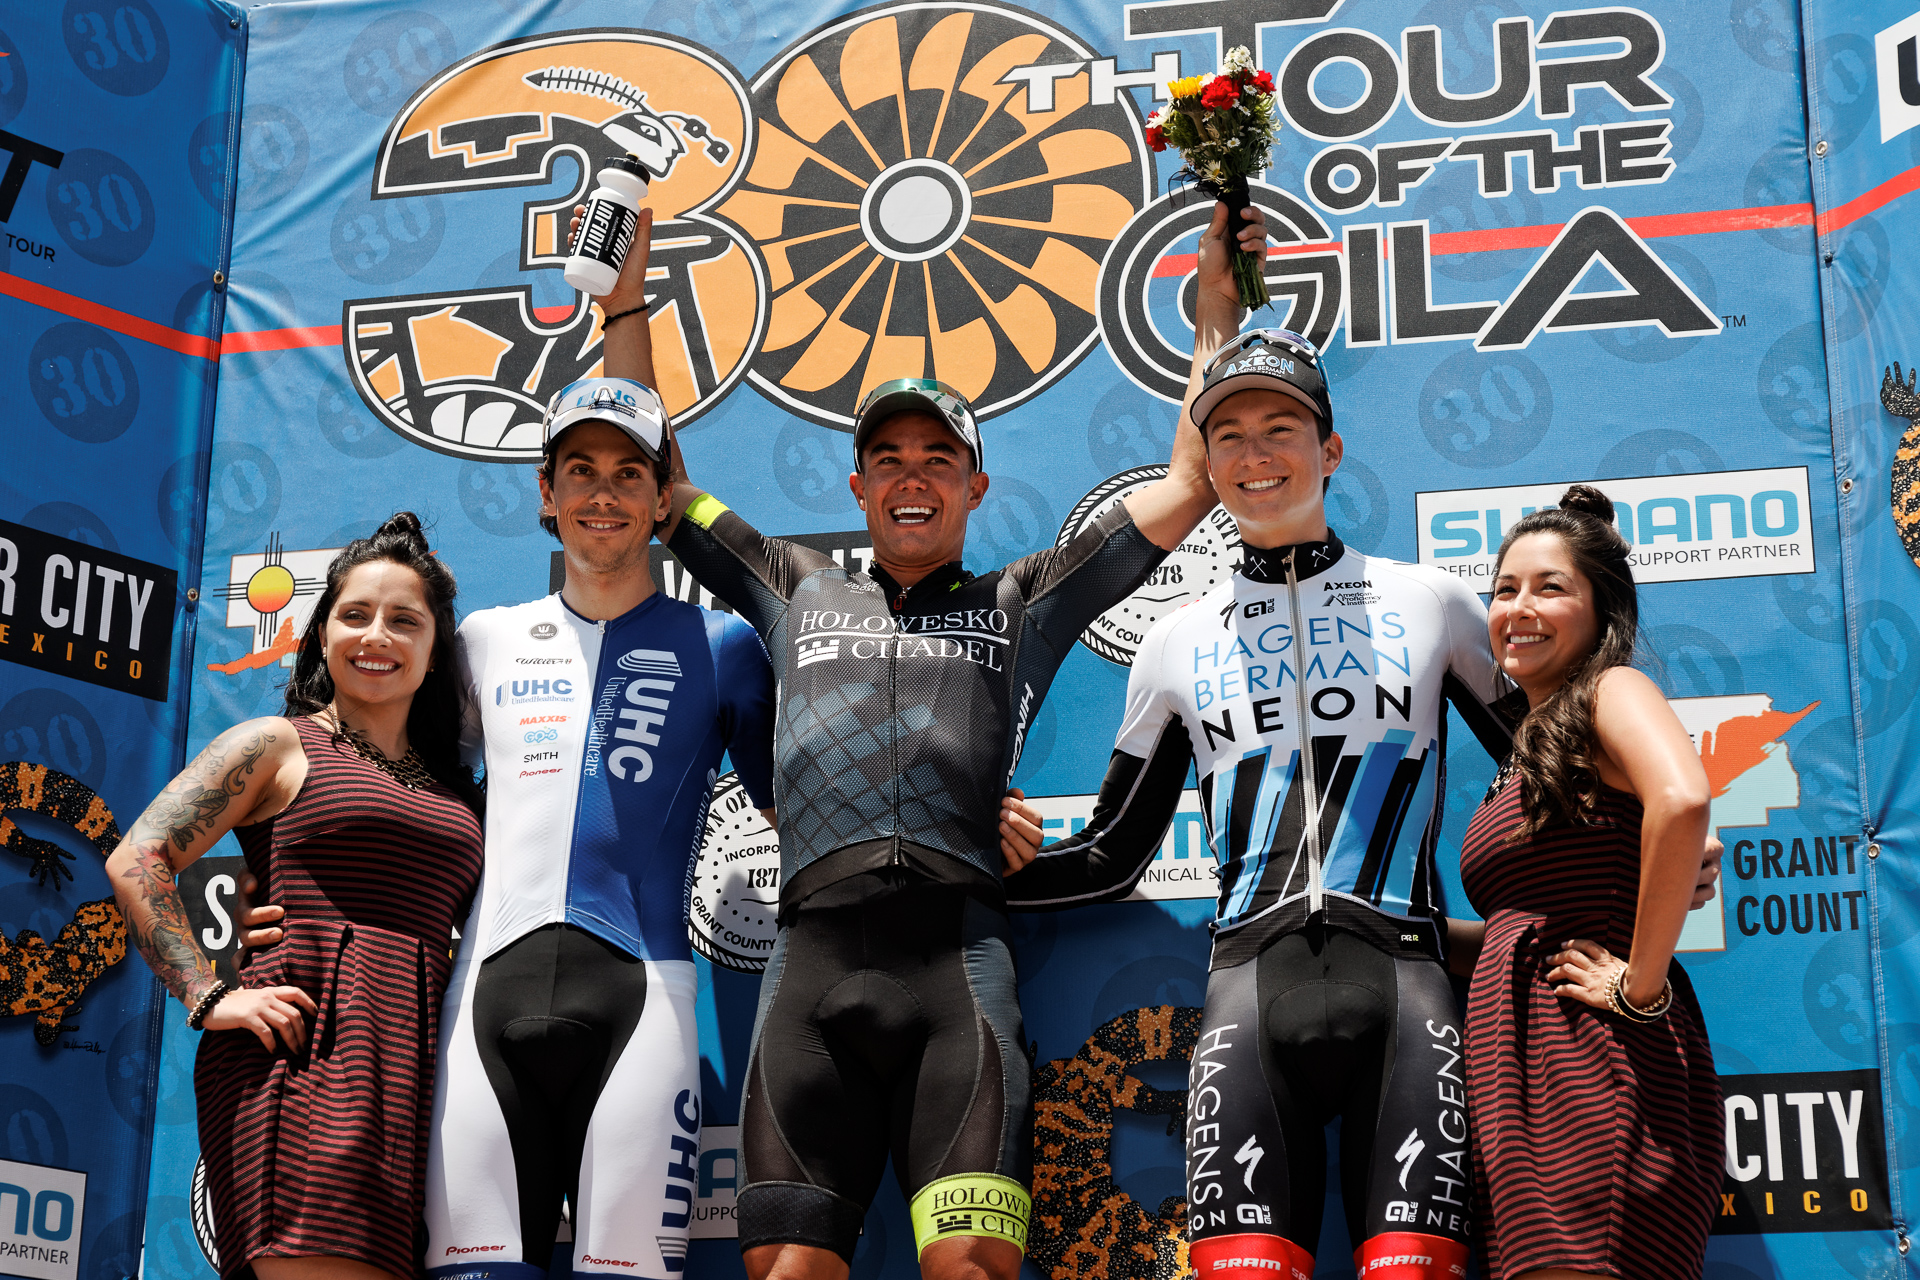 Neilson powless takes 3rd gila stage2